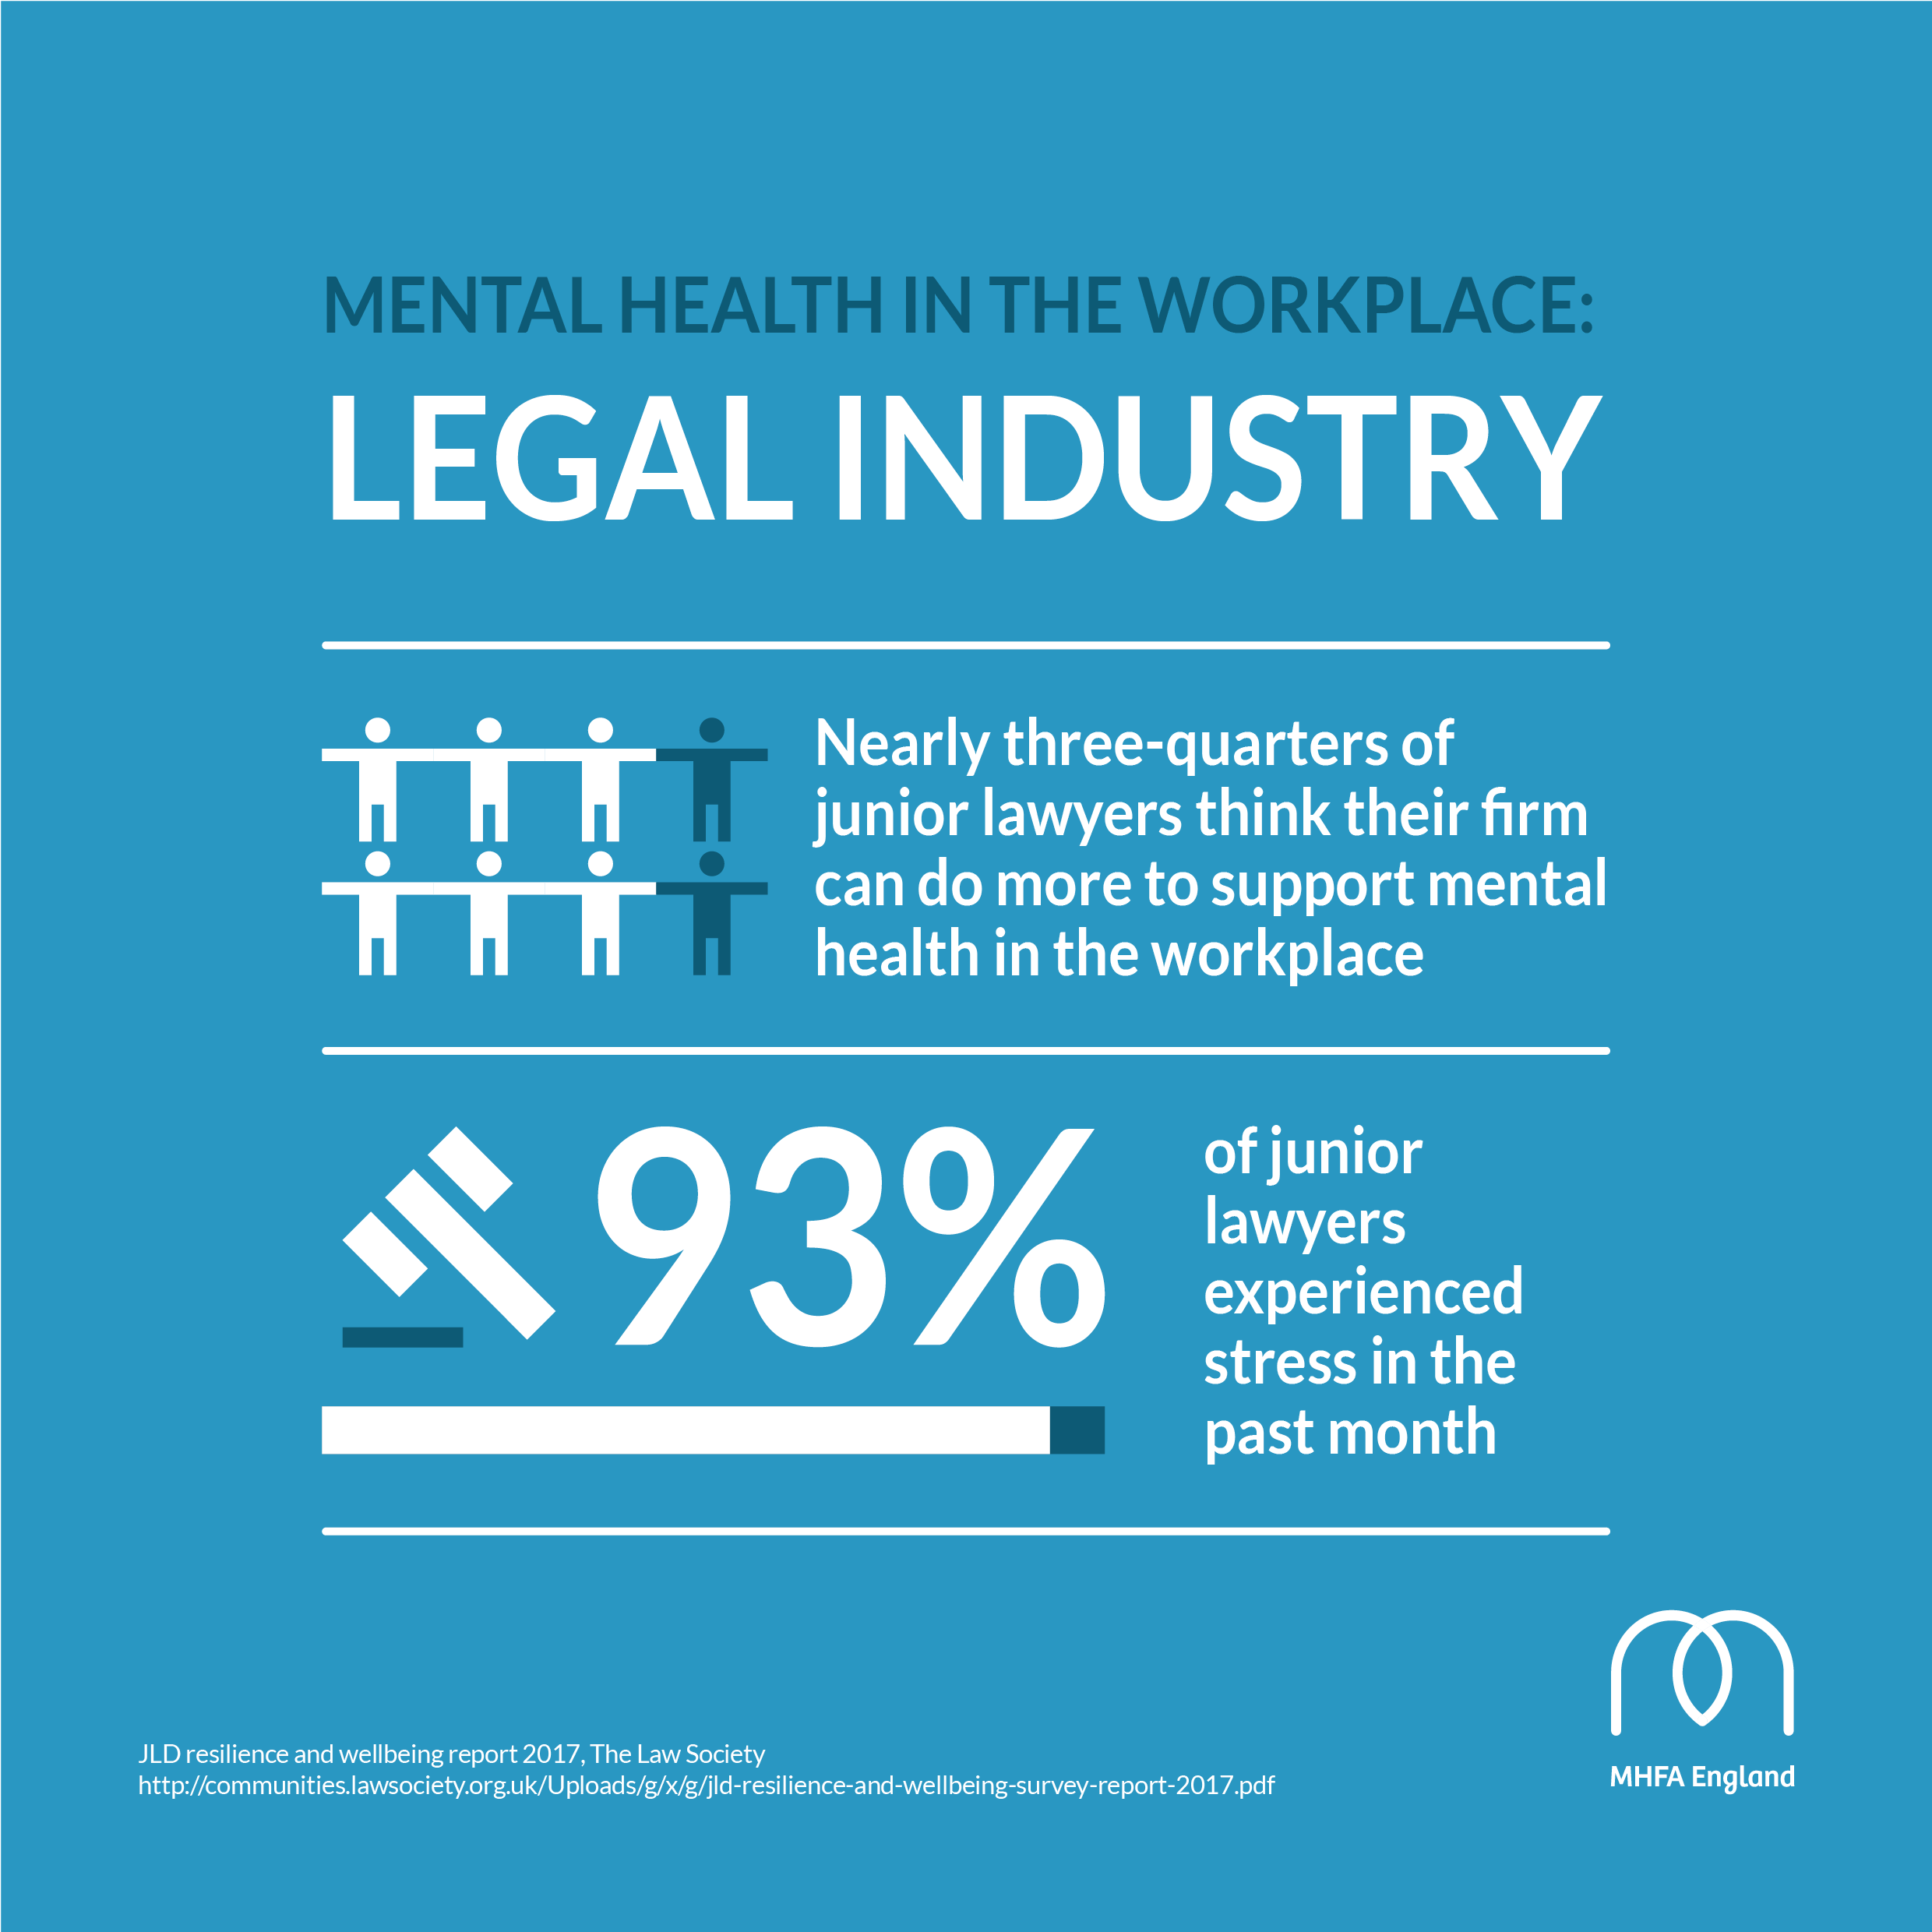 Social media graphic - Mental health in the legal industry